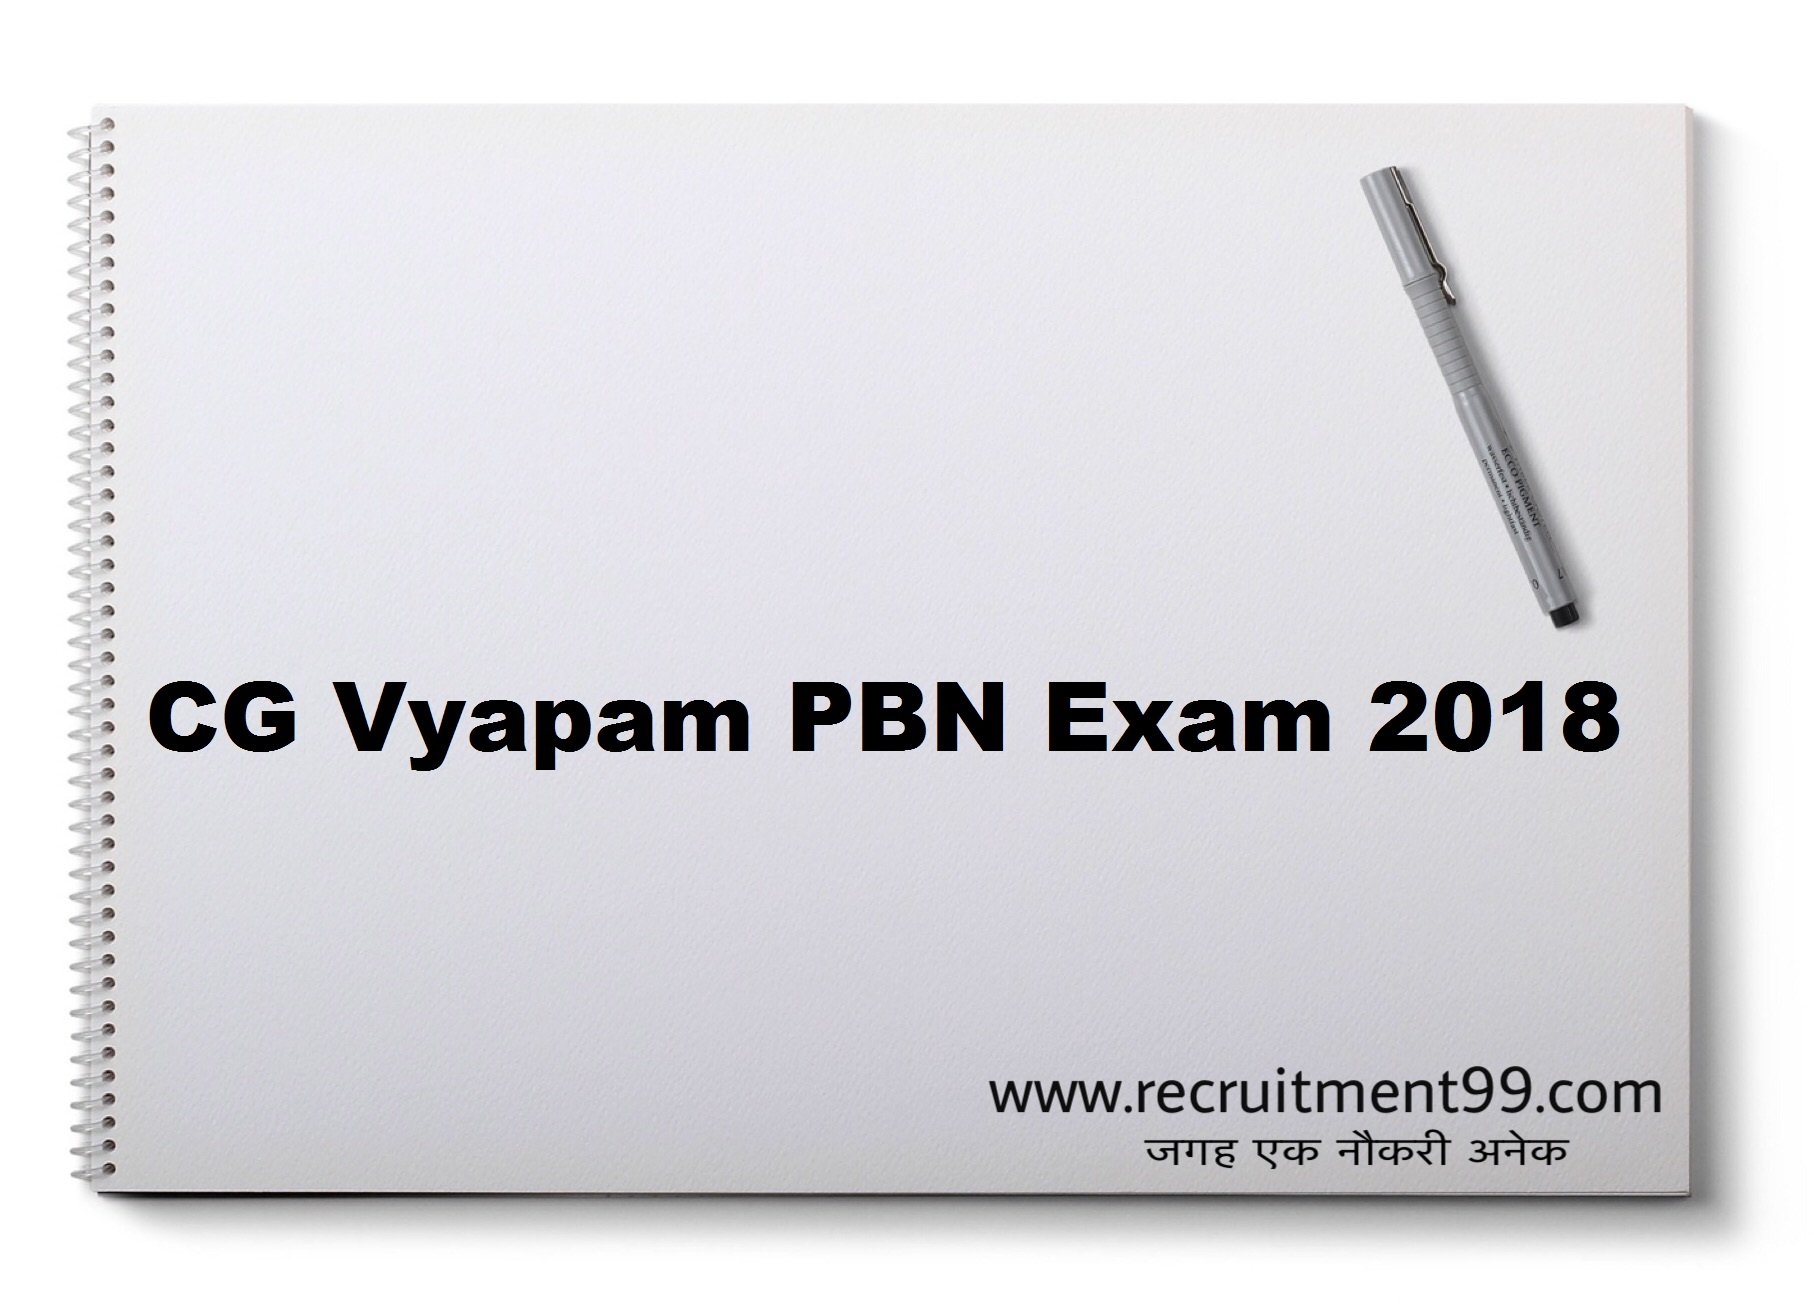 CG Vyapam PBN Exam Admit Card Result Counseling 2018